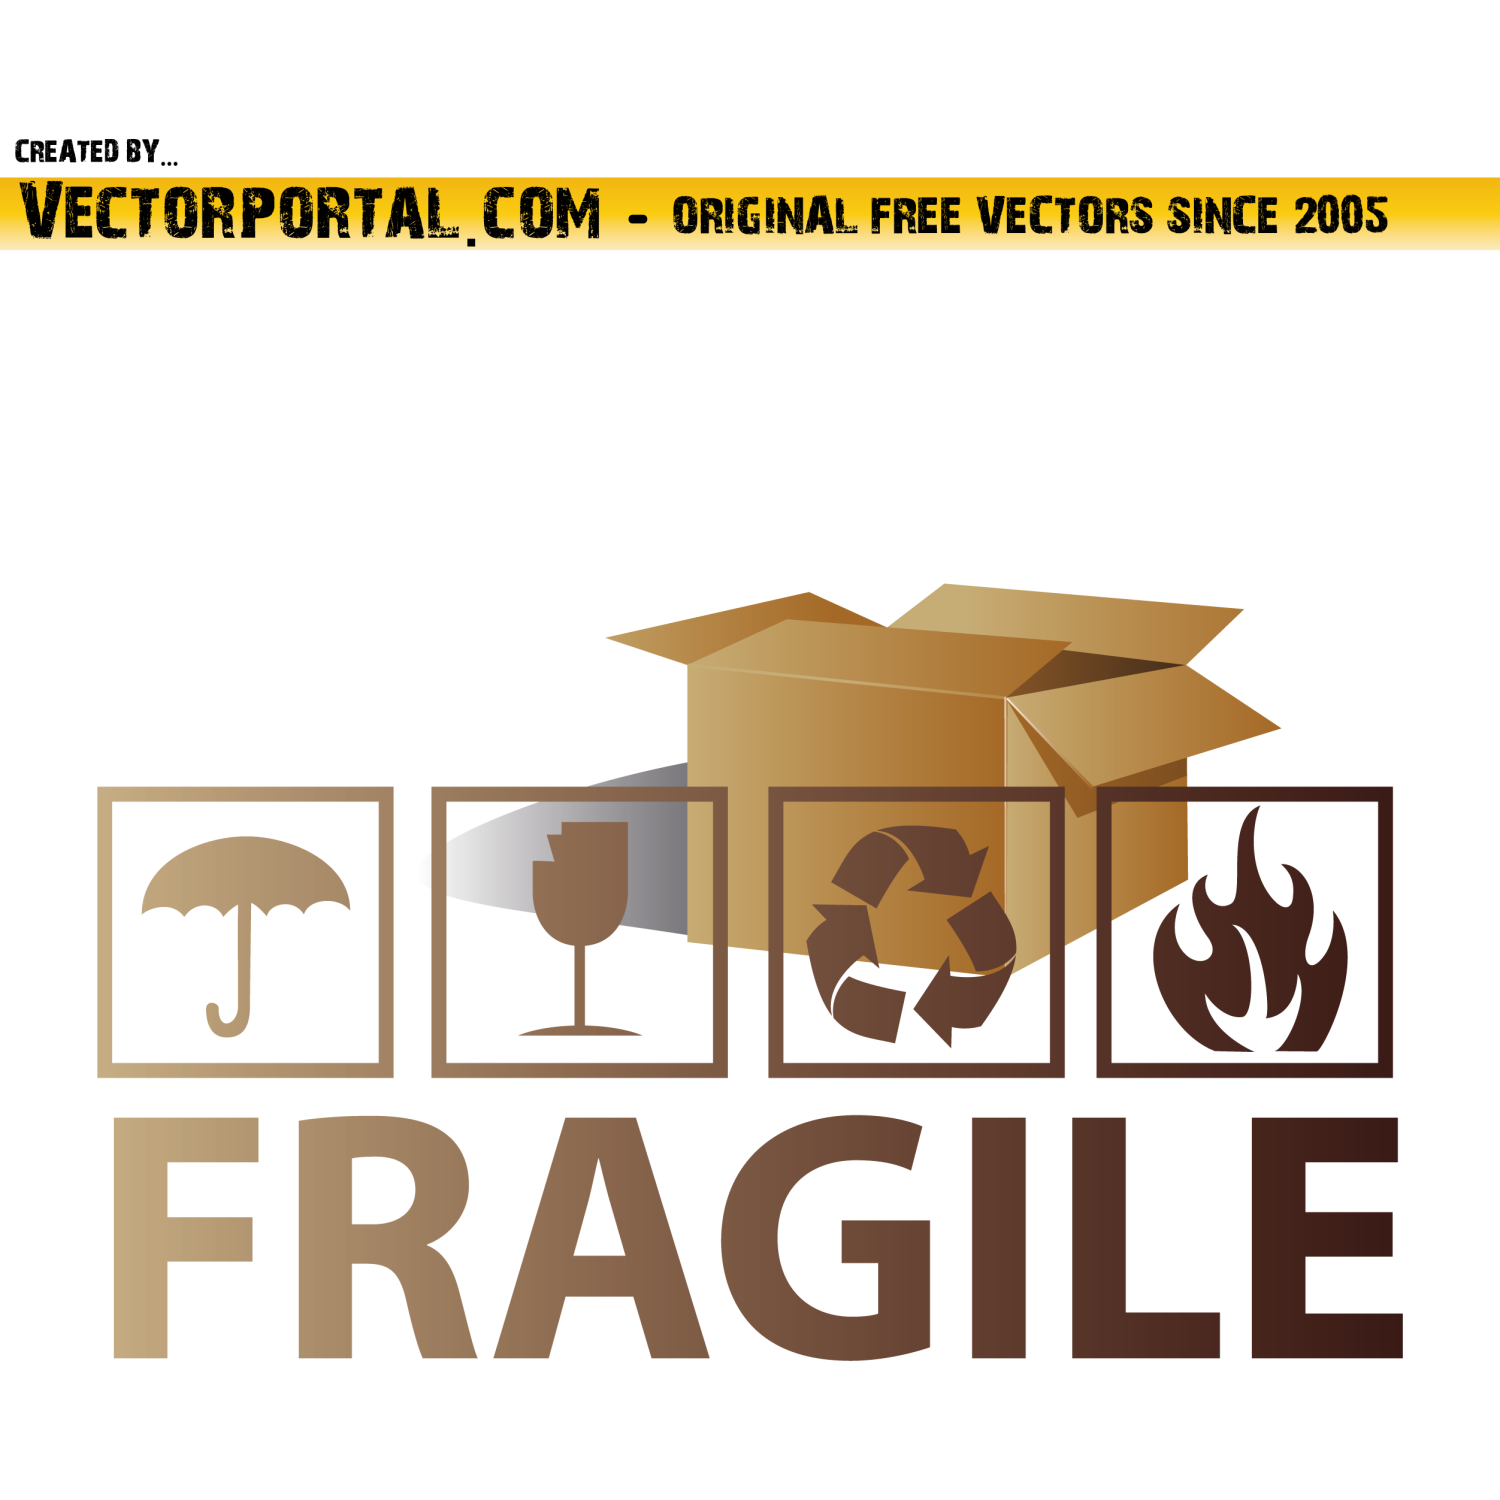 Fragile Symbols Vector